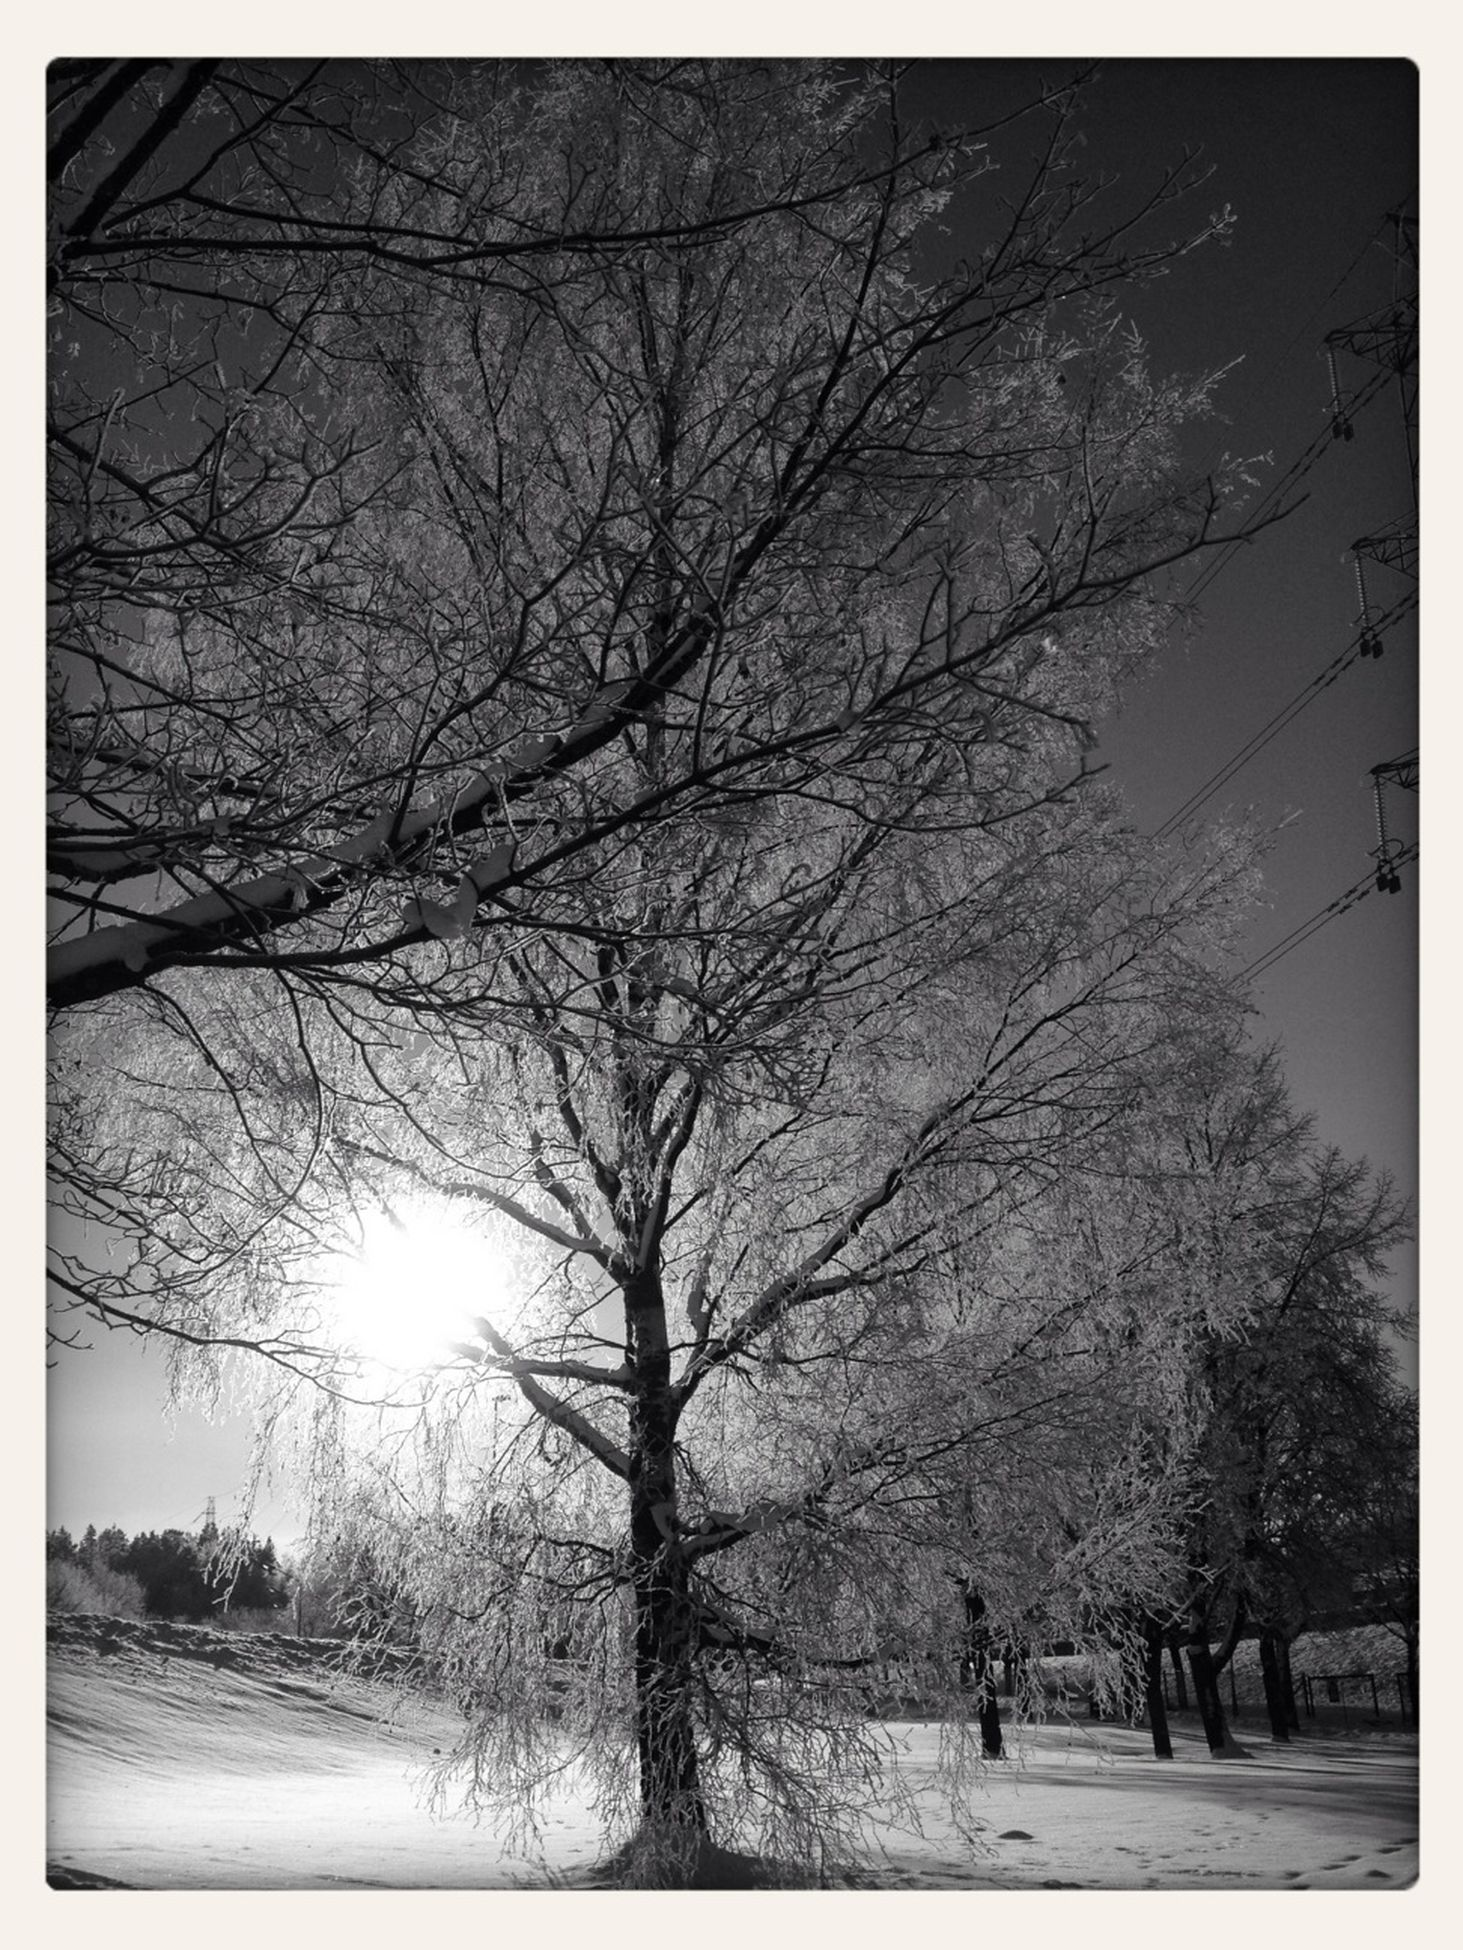 branch, bare tree, tree, tree trunk, outdoors, low angle view, nature, winter, season, cold temperature, no people, snow, tranquility, frozen, forest, cold, winter, cold temperature, weather, tranquility